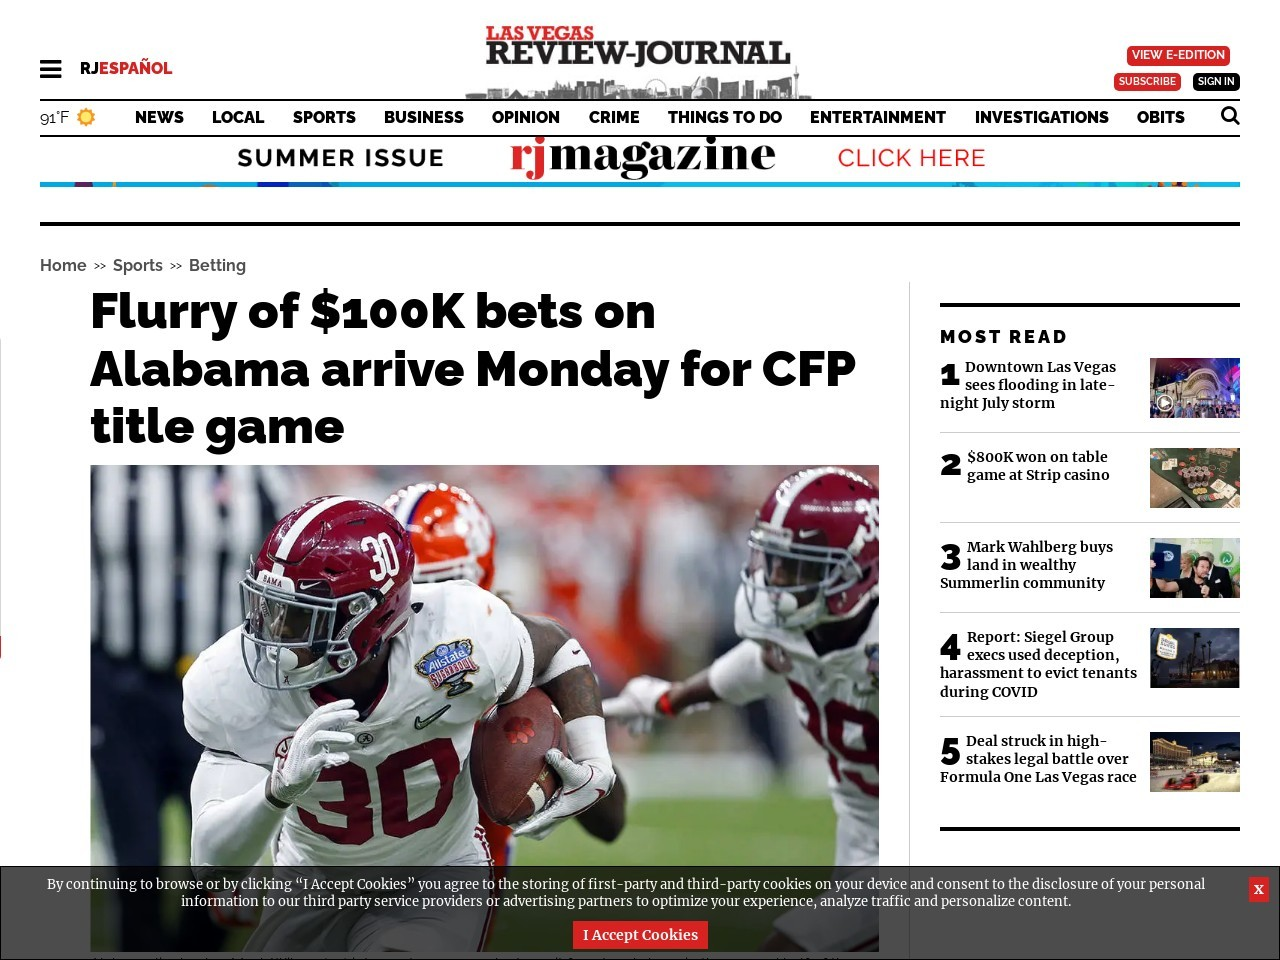 Flurry of $100K bets on Alabama arrive Monday for CFP title game